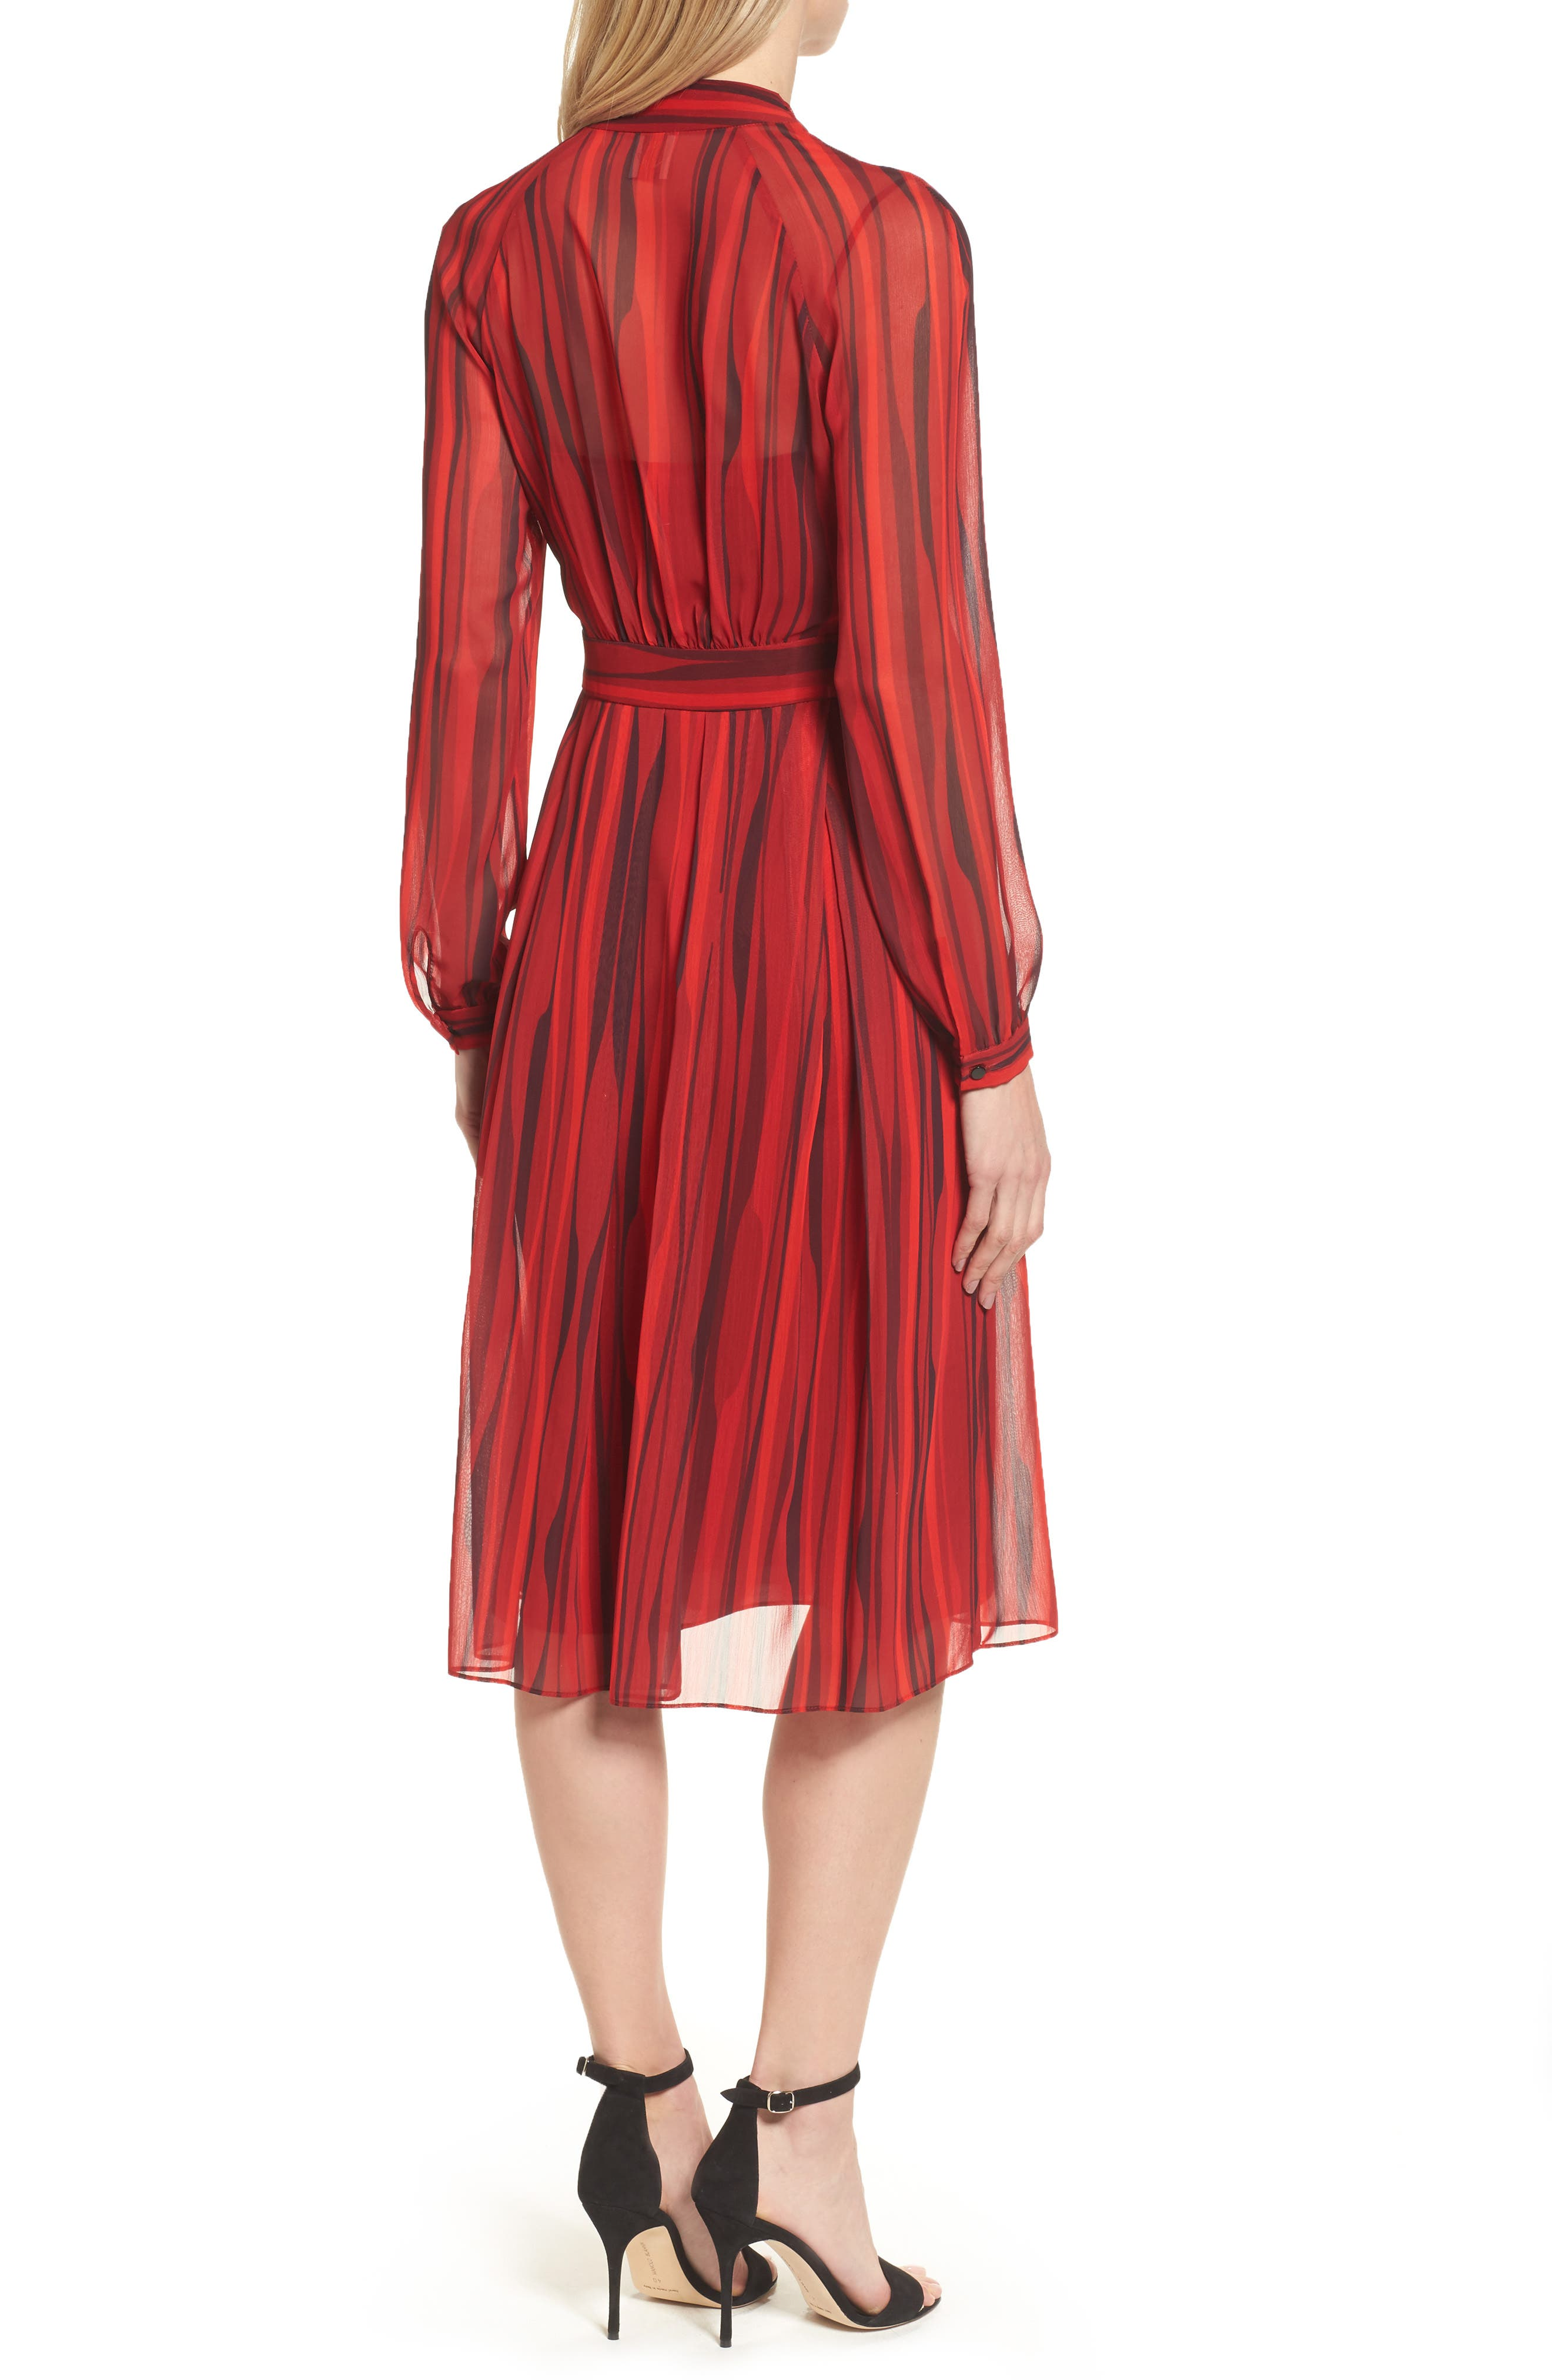 Fit & Flare Dress,                             Alternate thumbnail 2, color,                             Titian Red/ Black Combo